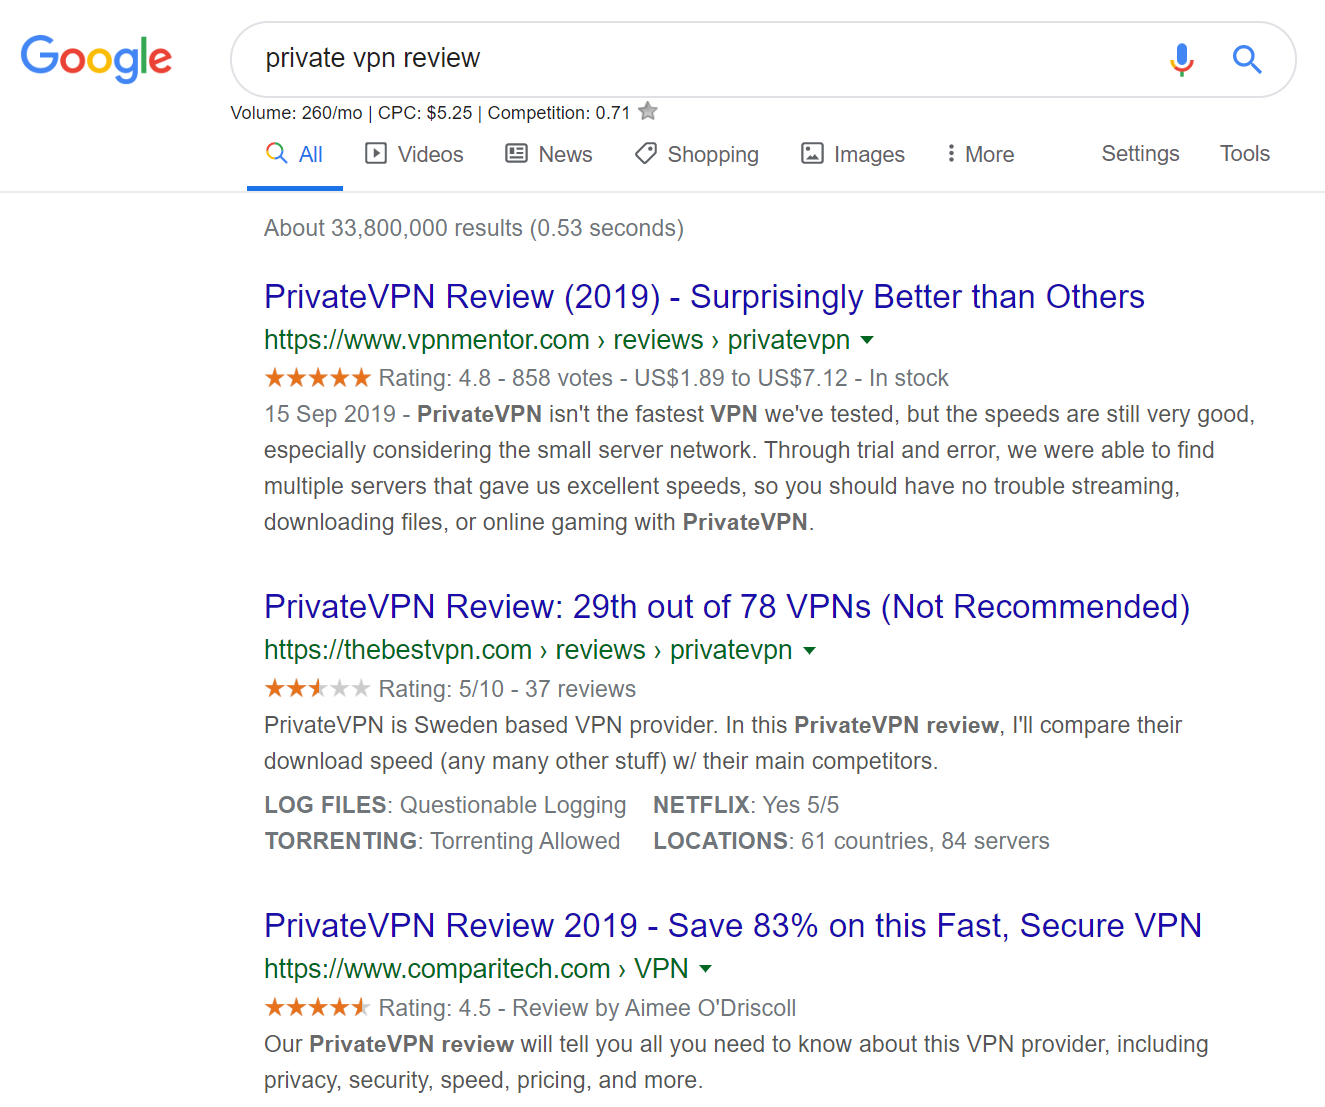 PrivateVPN Review Google Results